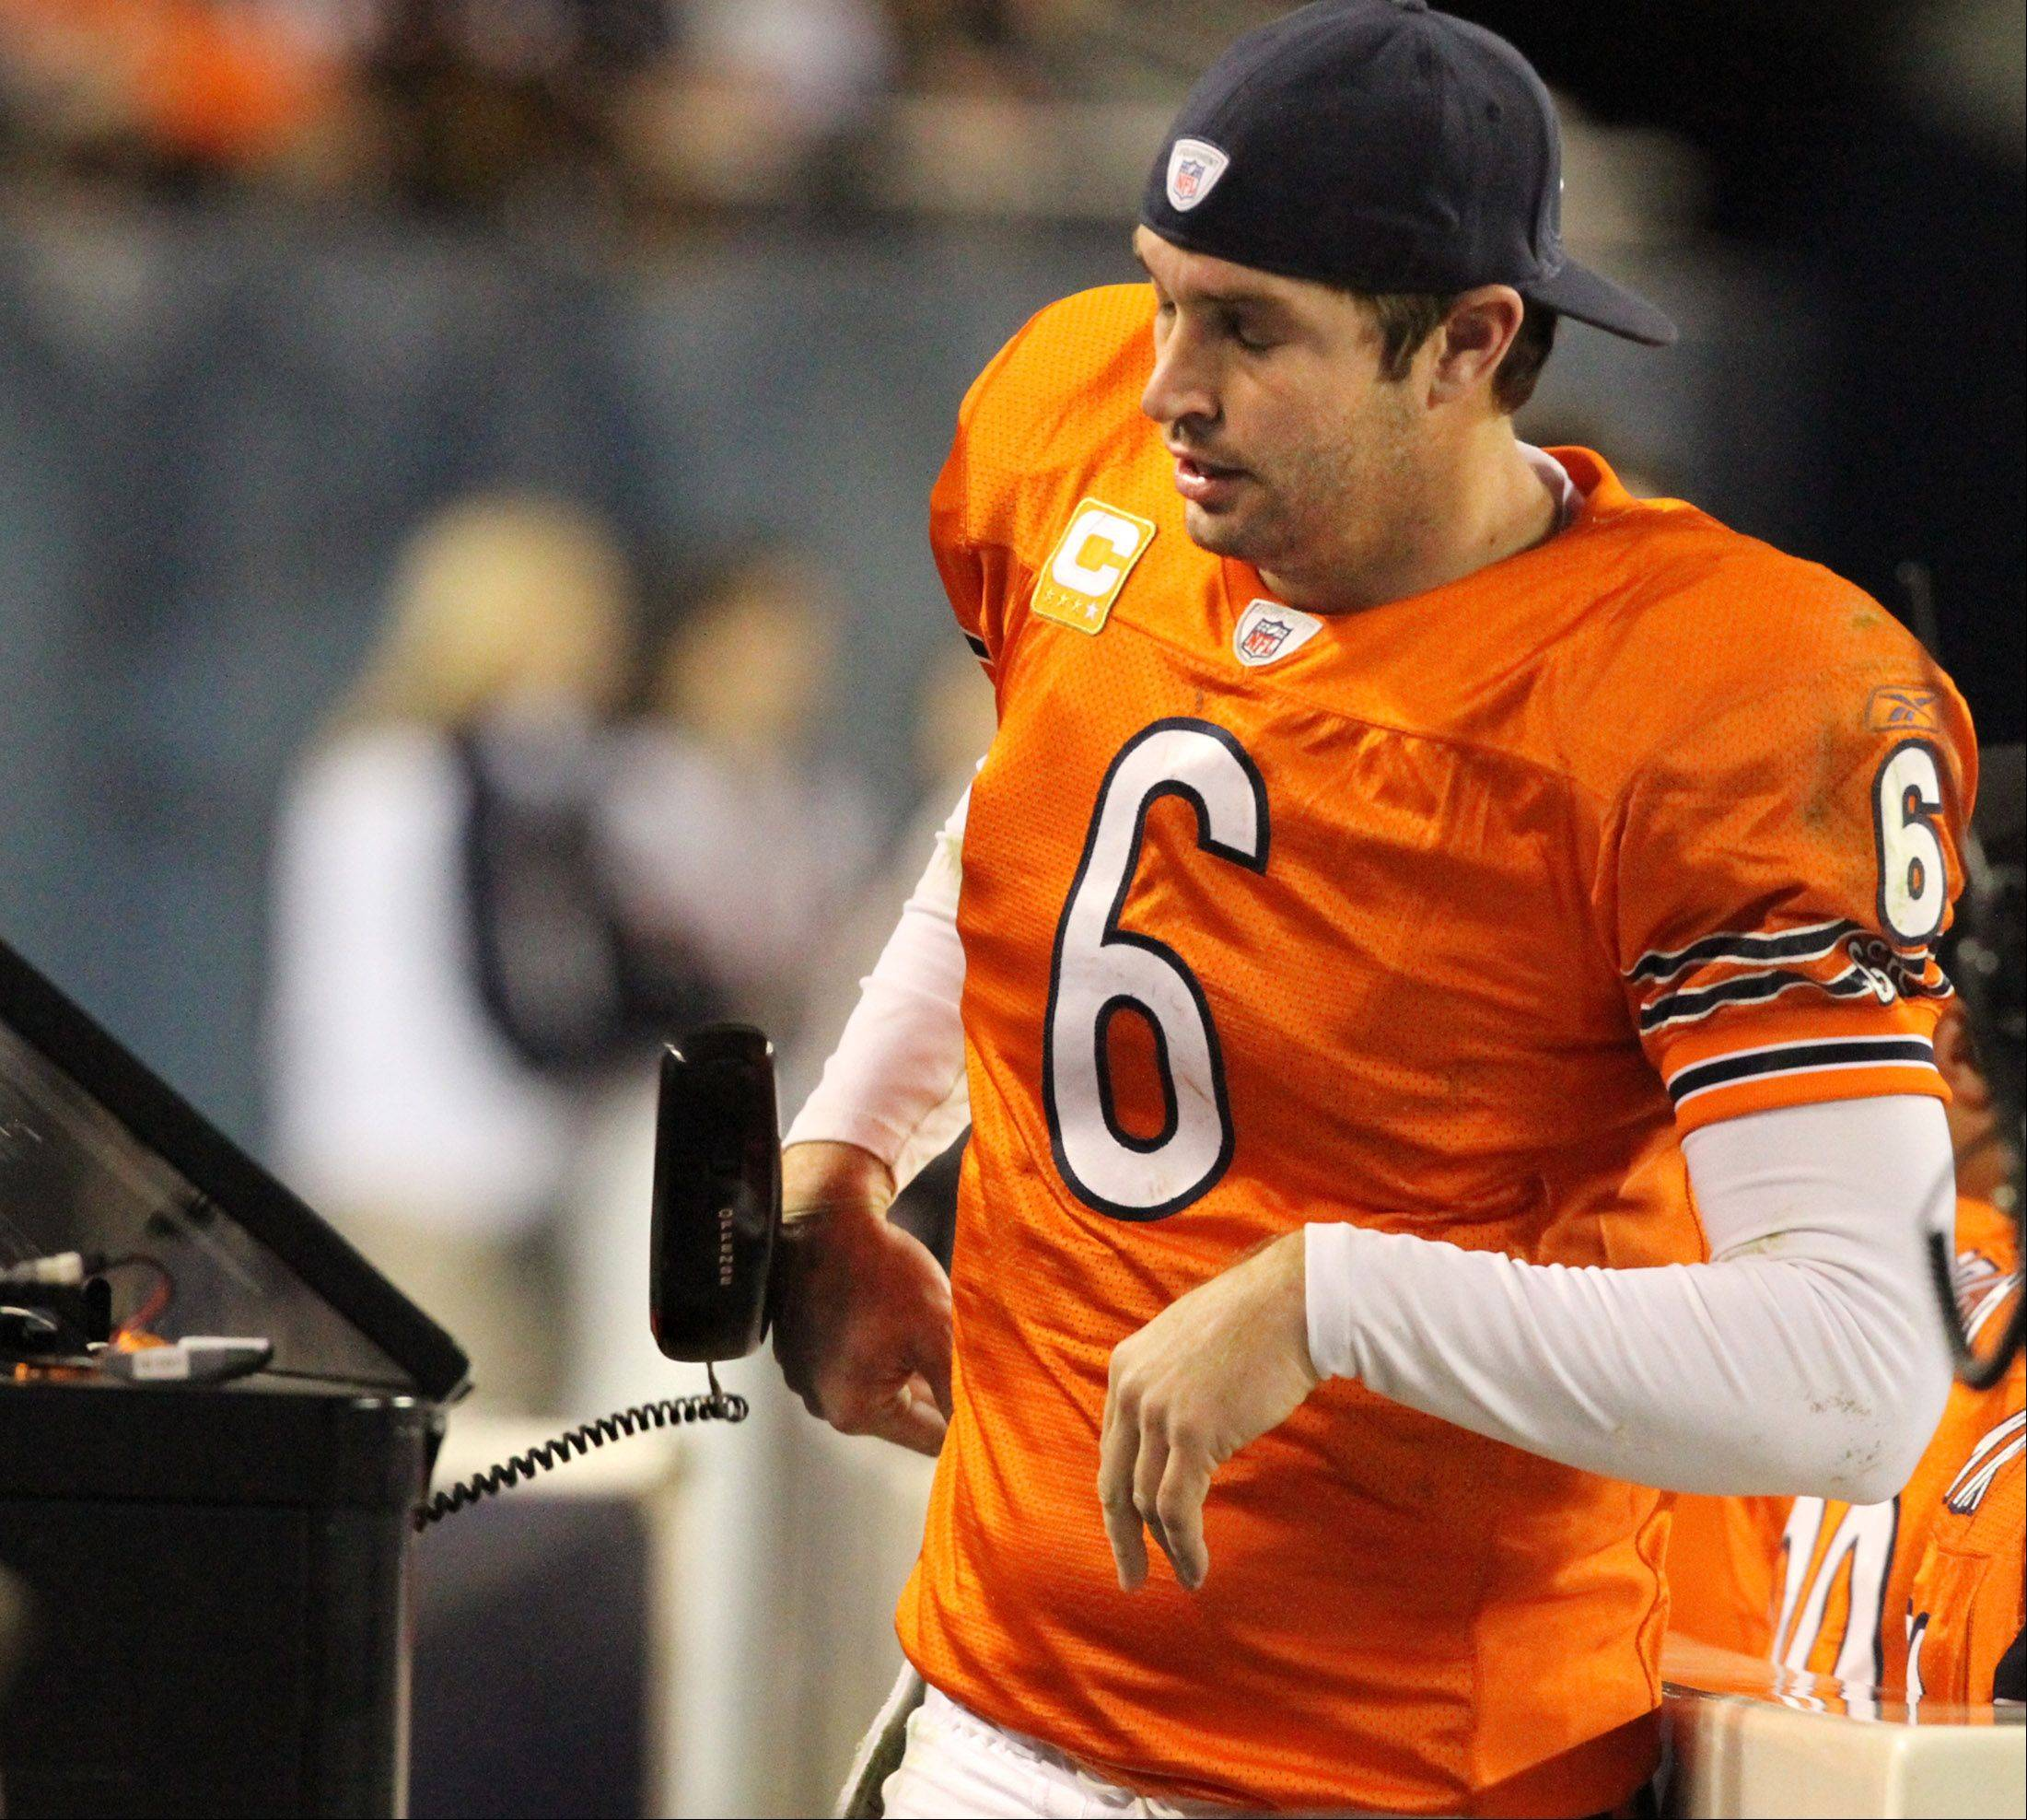 Chicago Bears quarterback Jay Cutler slams the sideline phone down after speaking to someone in the coaches booth after Cutler was sacked in the fourth-quarter against Detroit Lions at Soldier Field on Sunday.